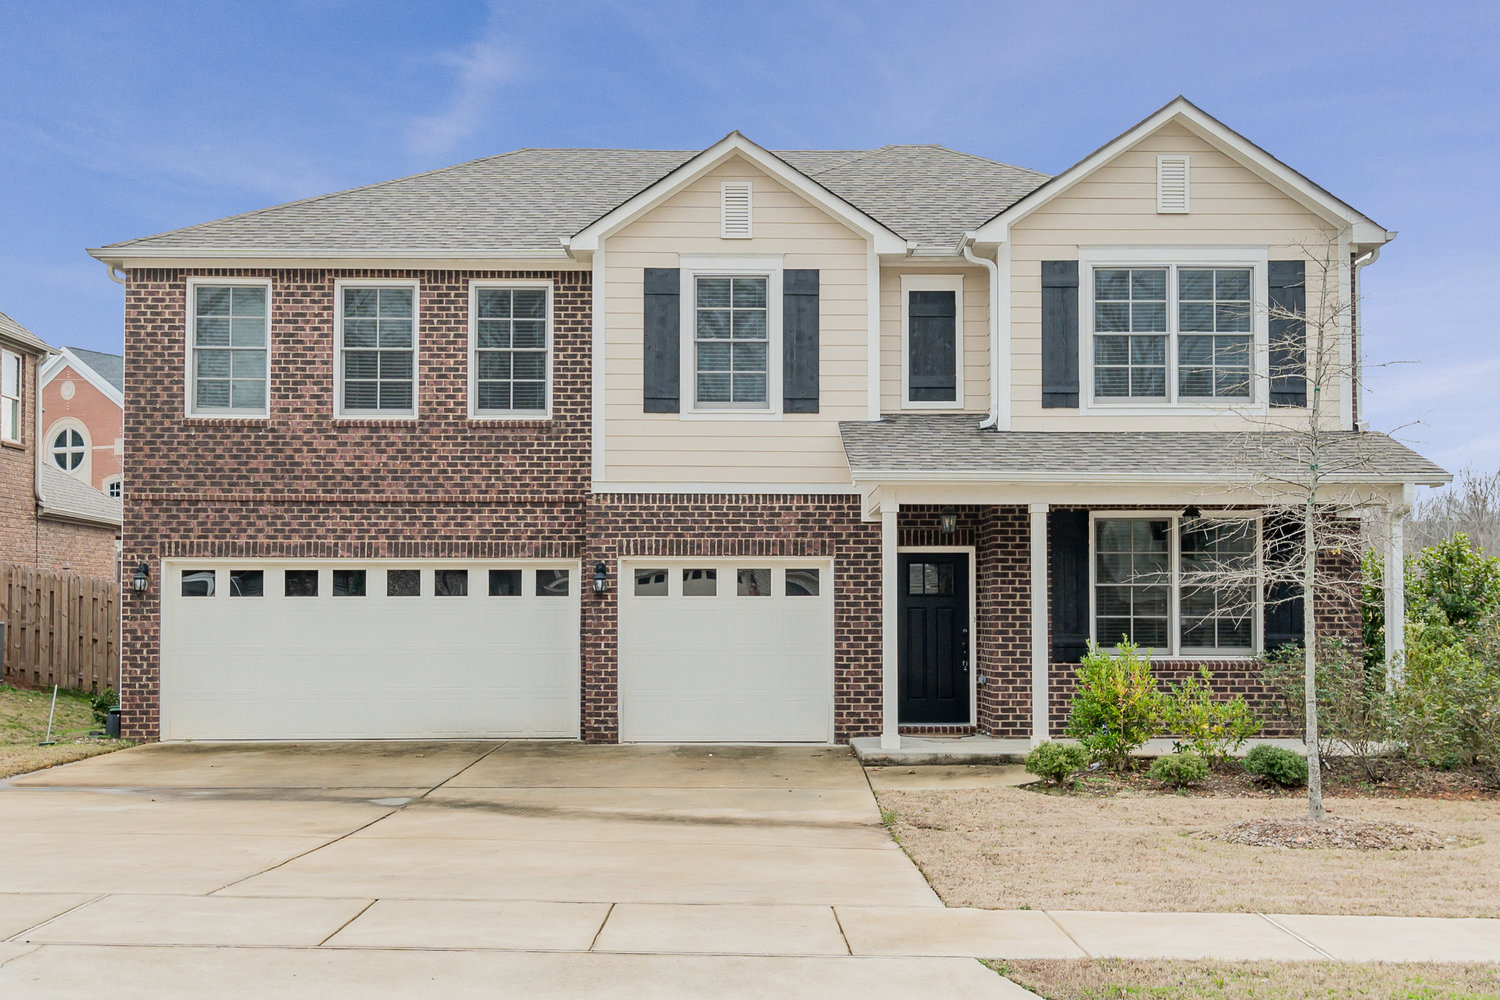 Virtual Tour of Birmingham Metro Real Estate Listing For Sale | 1205 Hunters Gate Drive, Birmingham, AL 35242